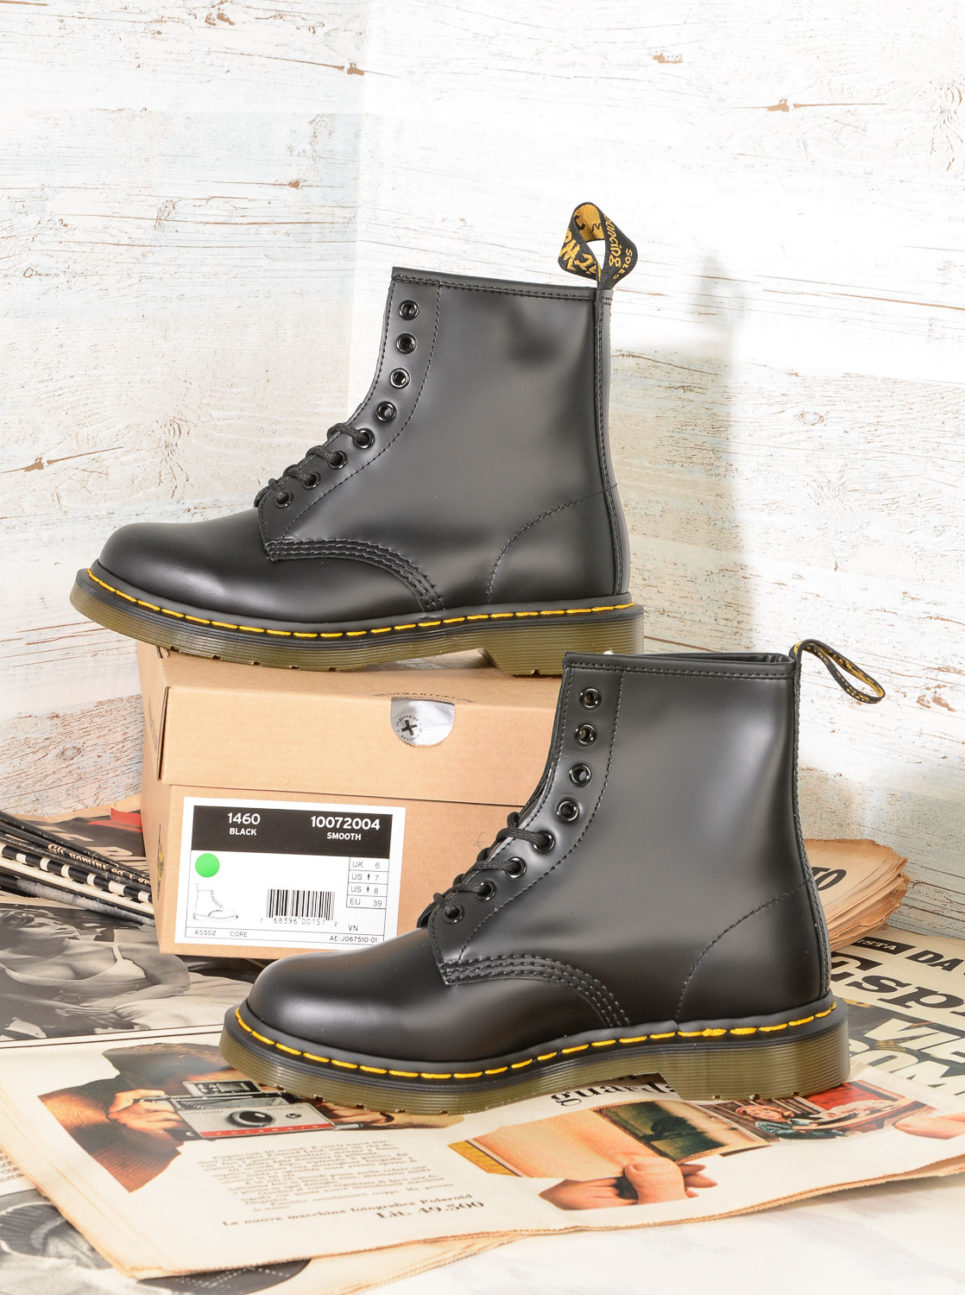 1460 DrMartens 10072004 Black Smooth (2)